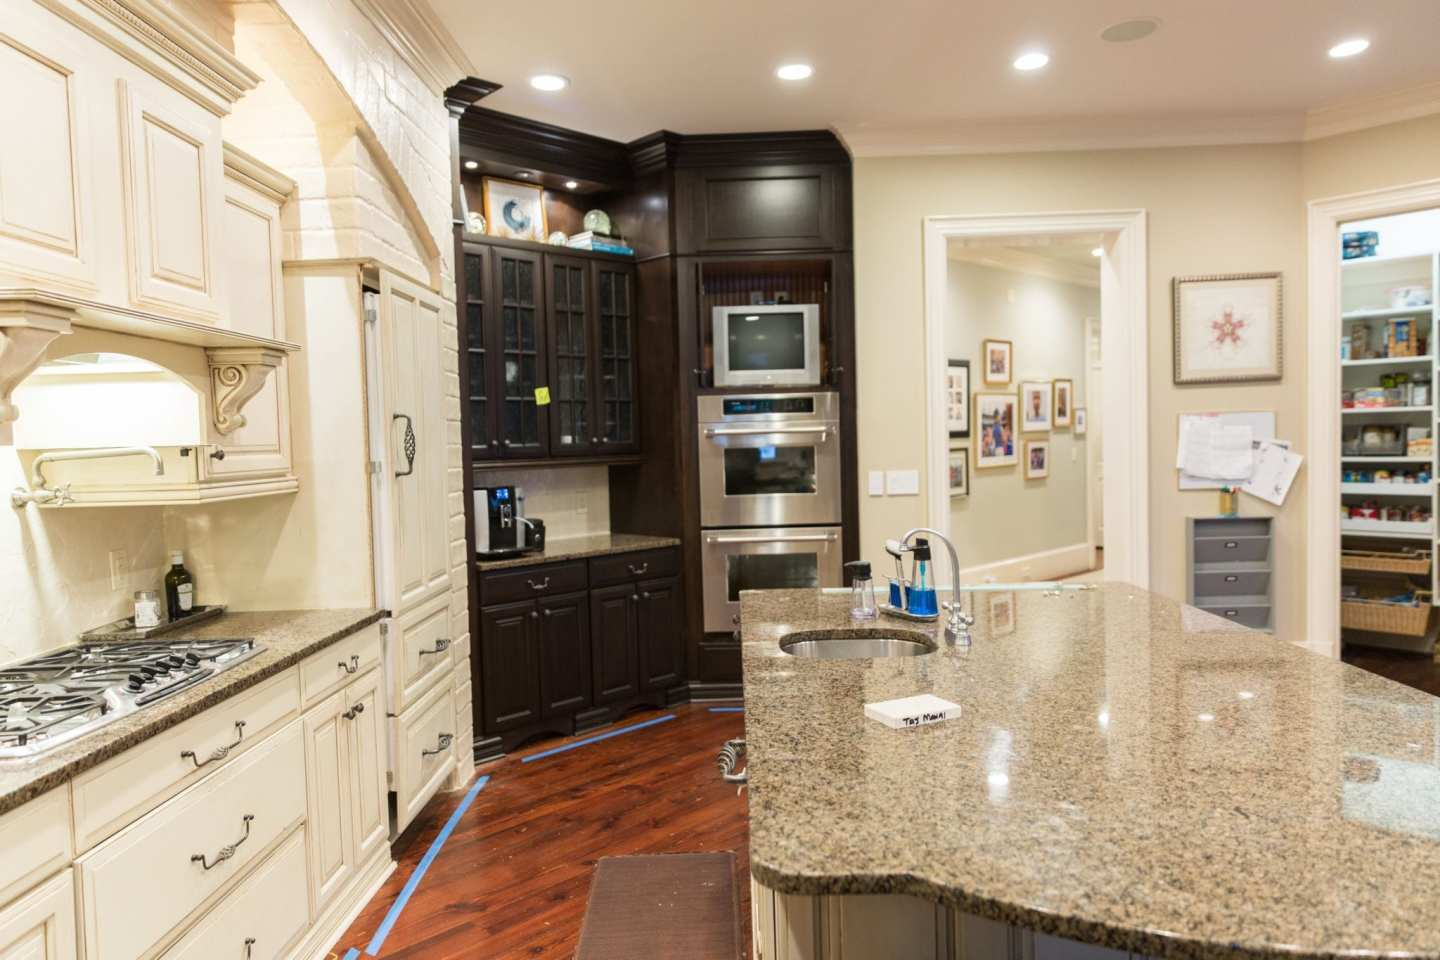 Kitchen remodel before and after. TV in kitchen with granite countertops.